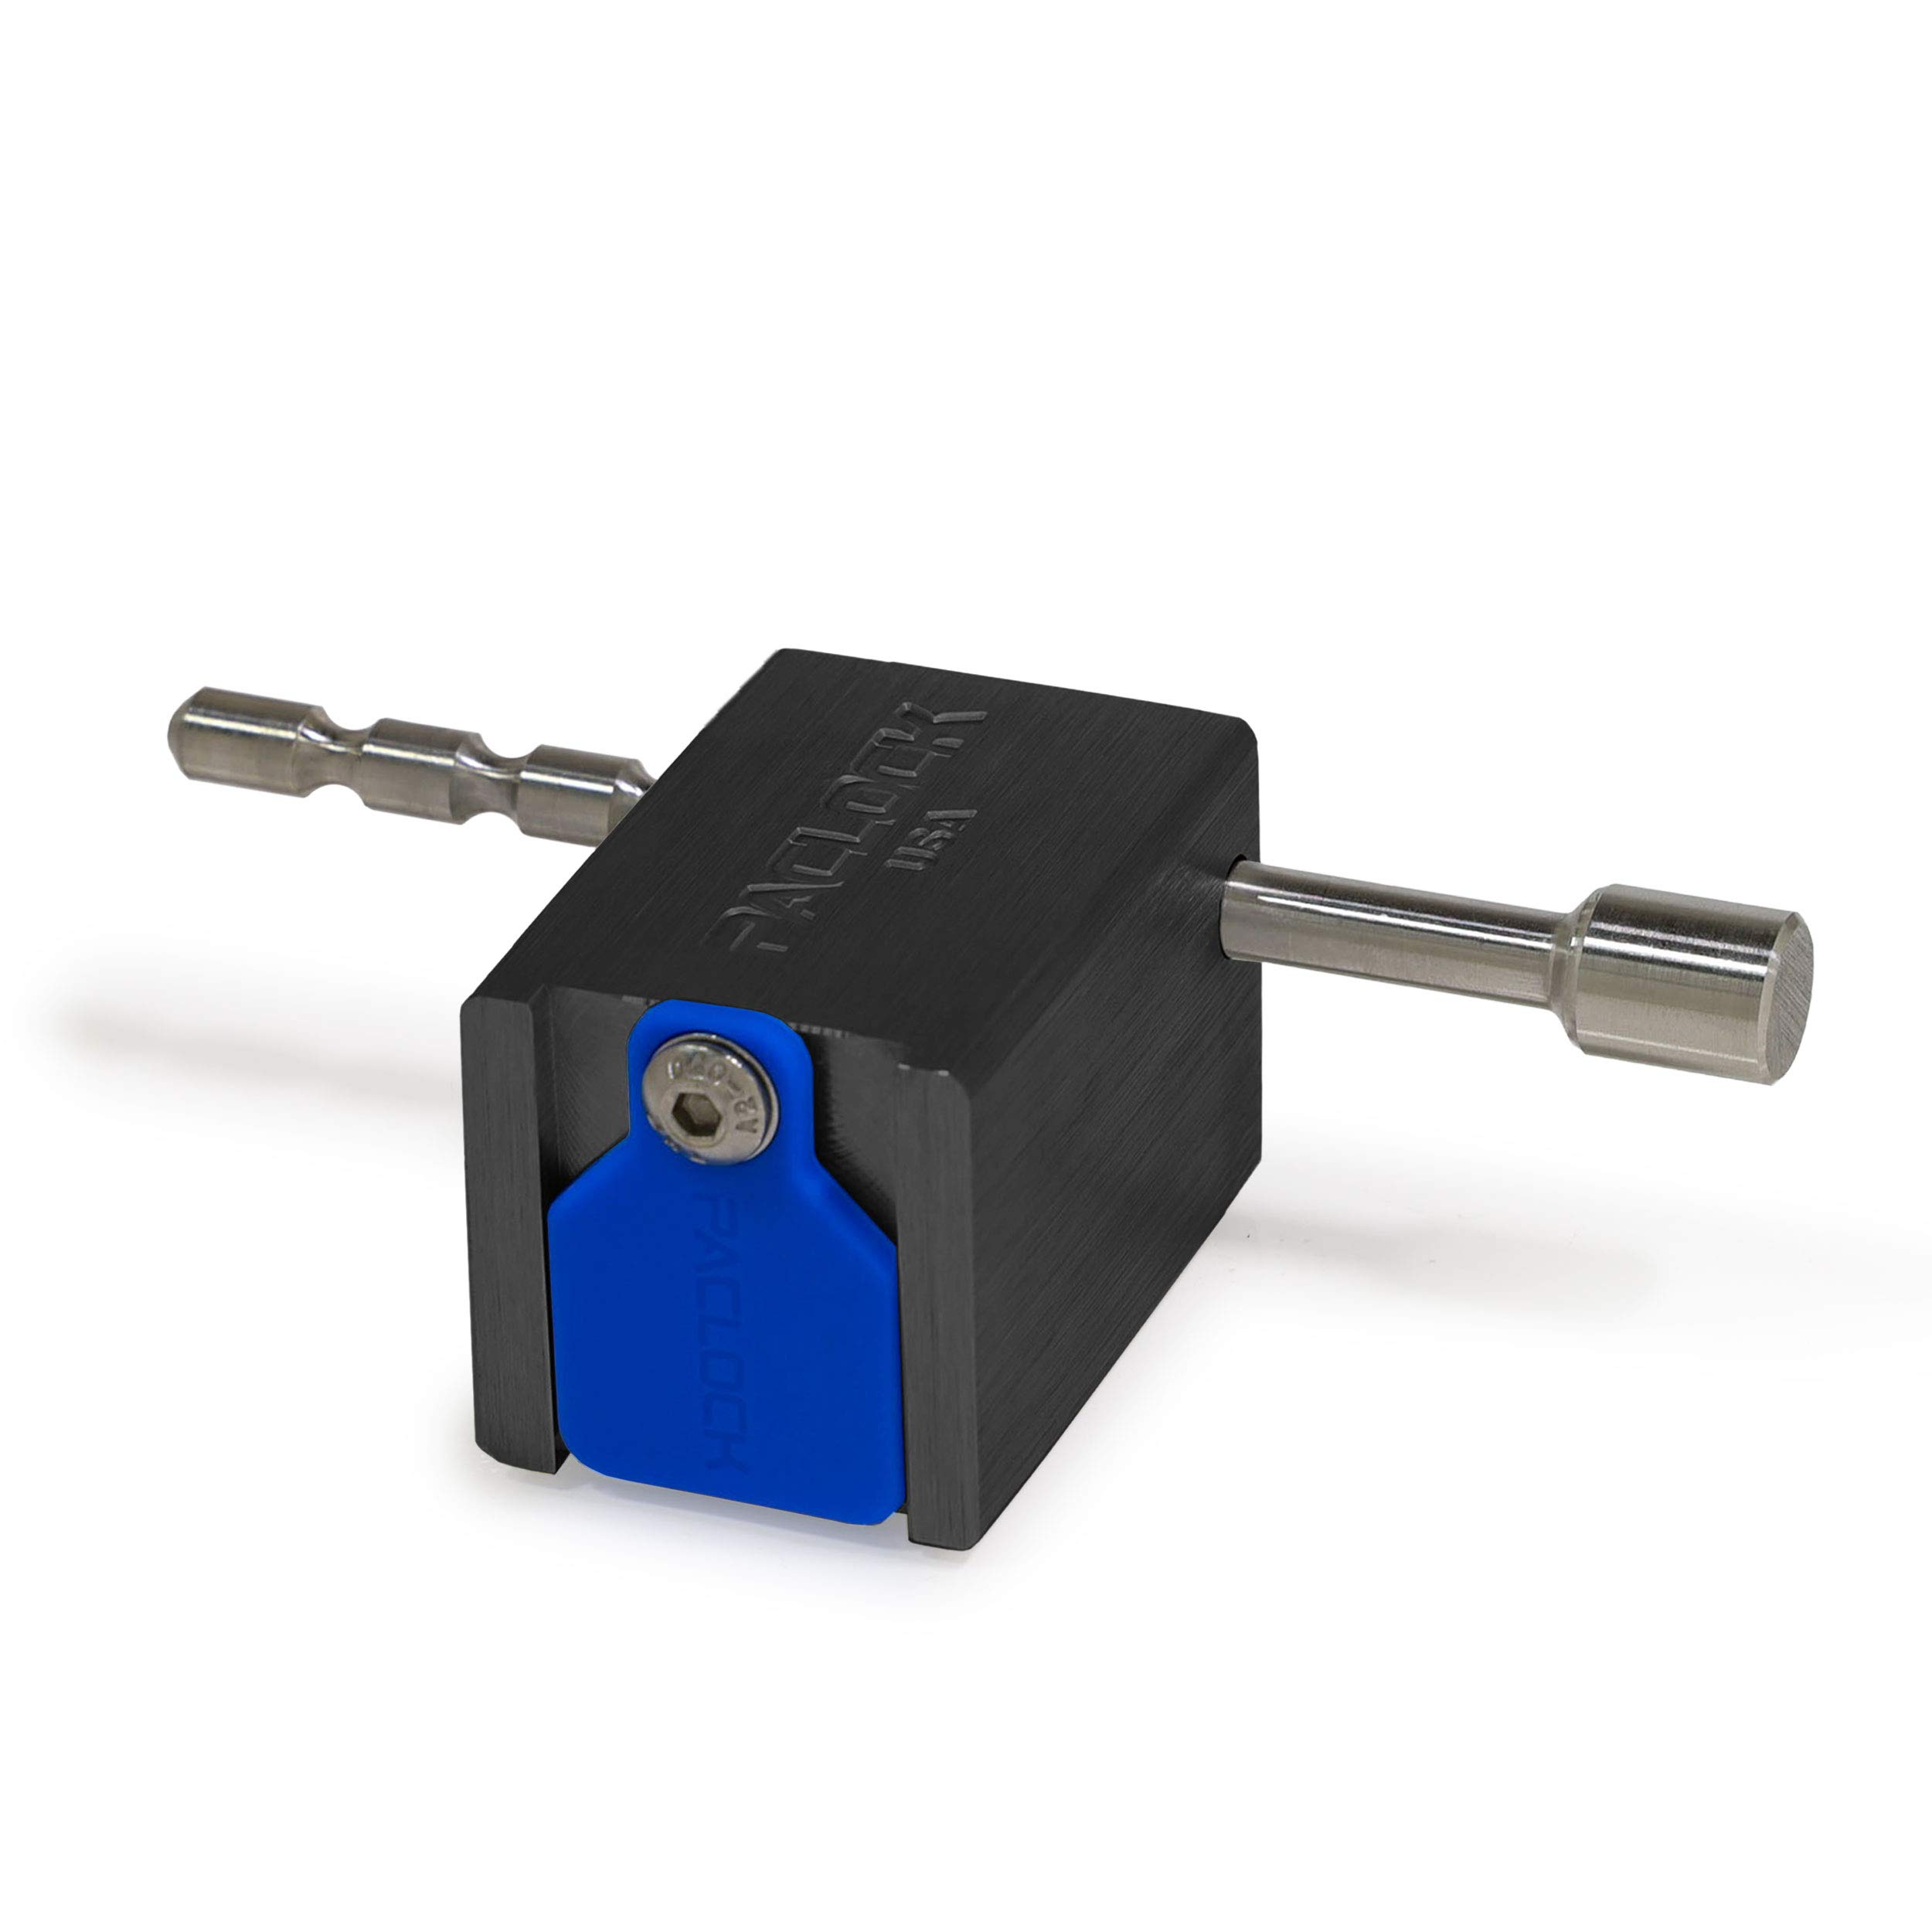 PACLOCK's UCS-79A Universal Trailer Coupler Lock, Buy American Act Compliant, Black Anodized Aluminum, High Security 6-Pin Cylinder, One Lock Keyed to a Number U-Pick! w/ 2 Keys